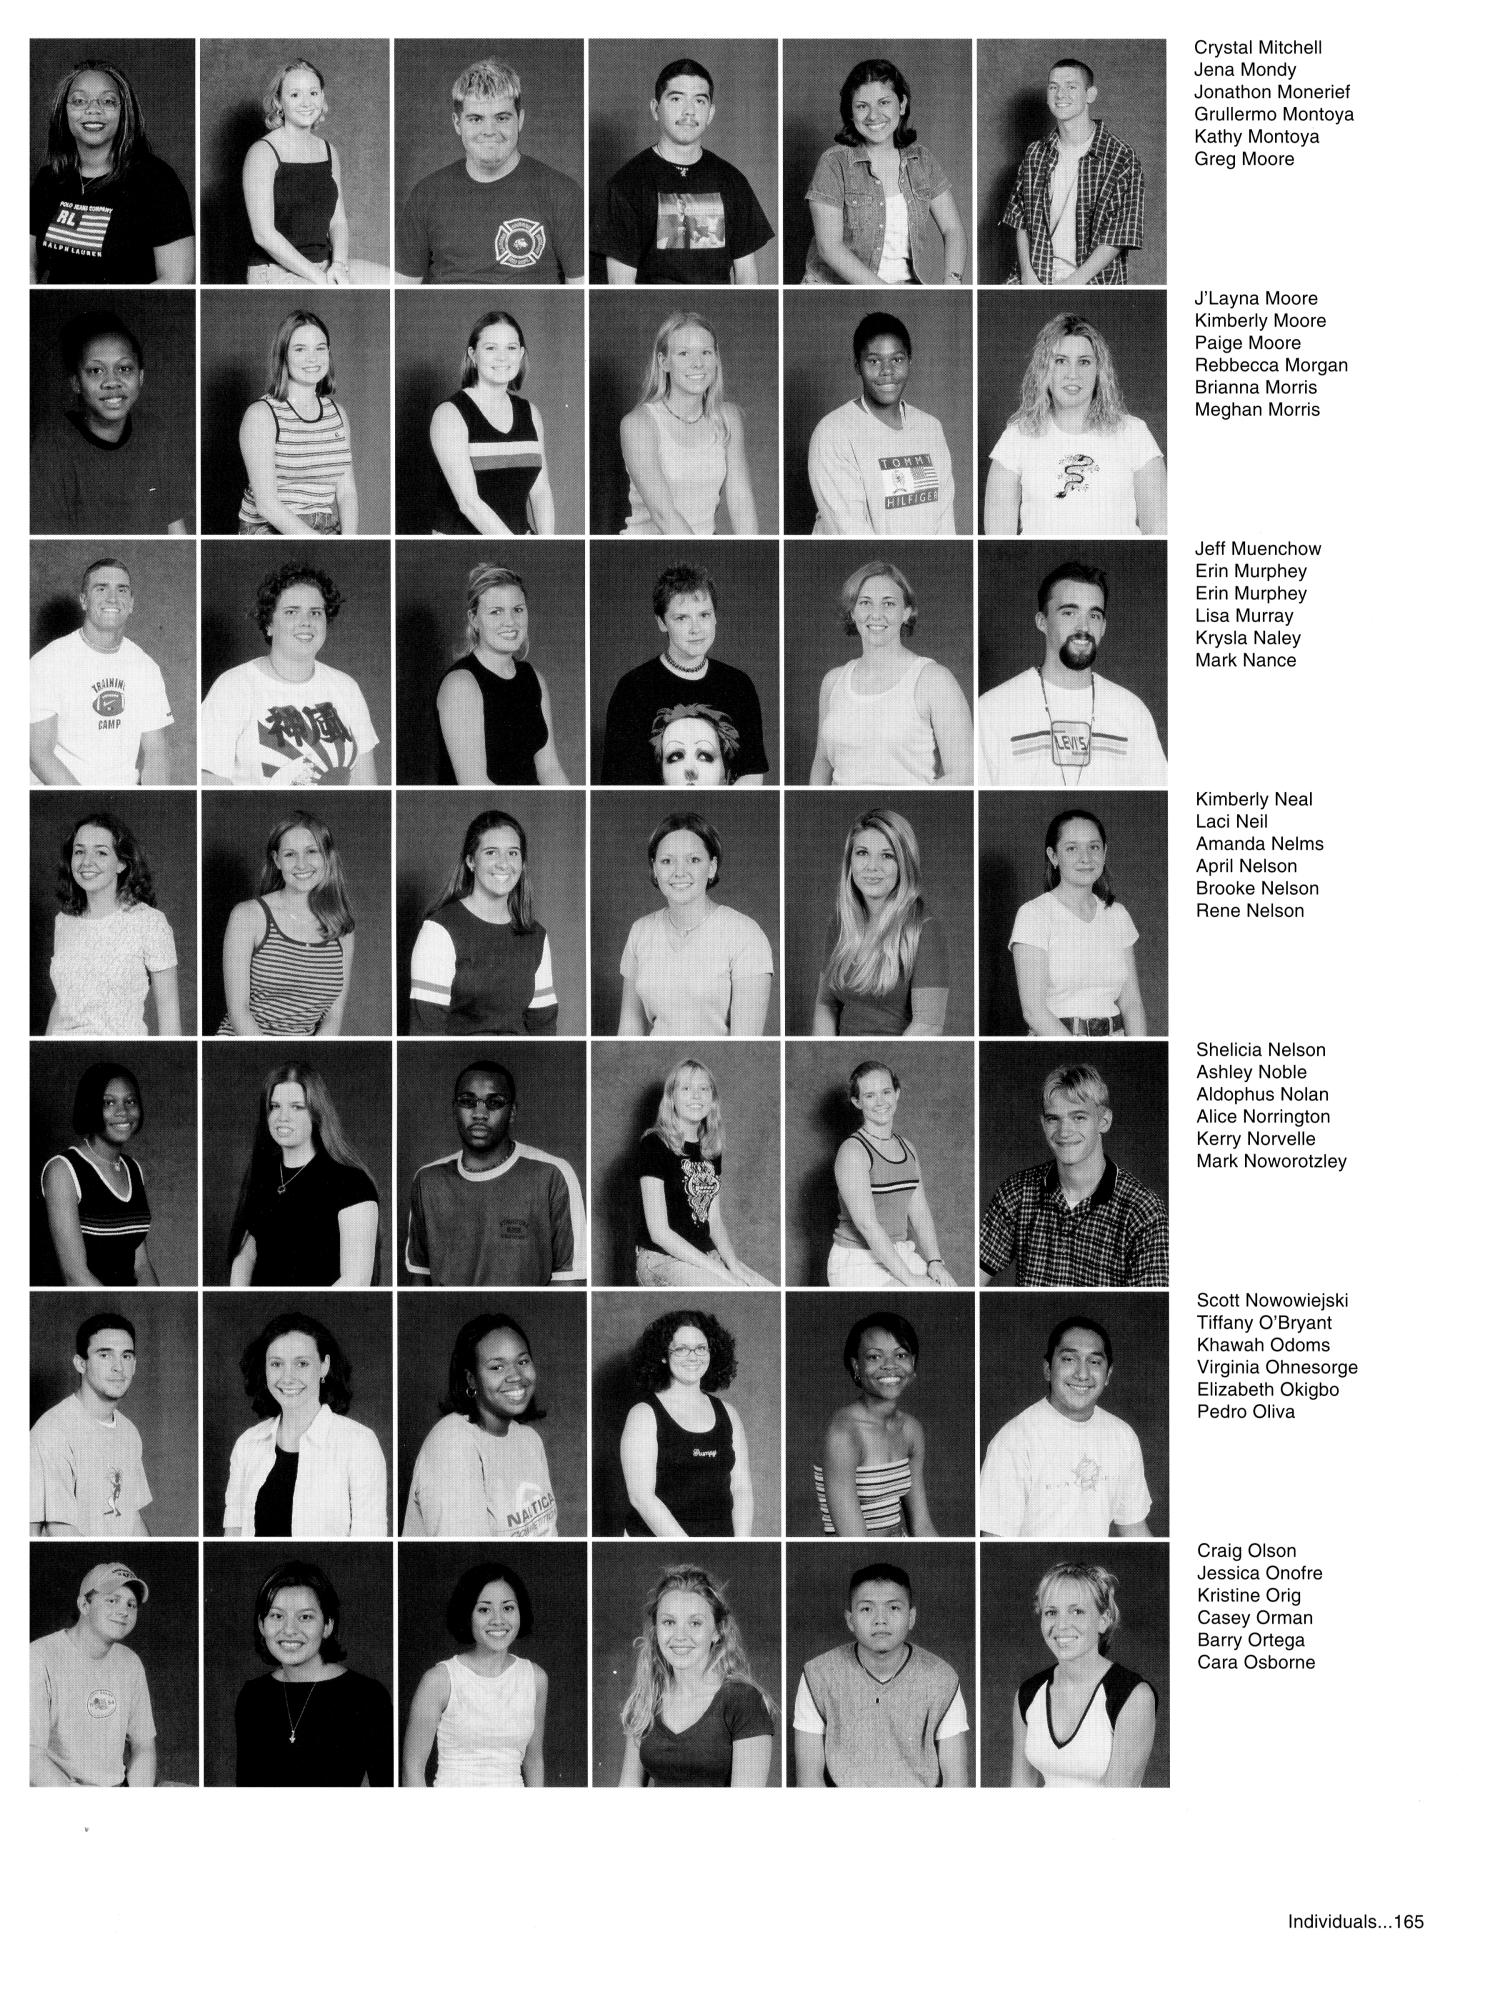 the aerie yearbook of university of north texas page  the aerie yearbook of university of north texas 2000 page 165 digital library